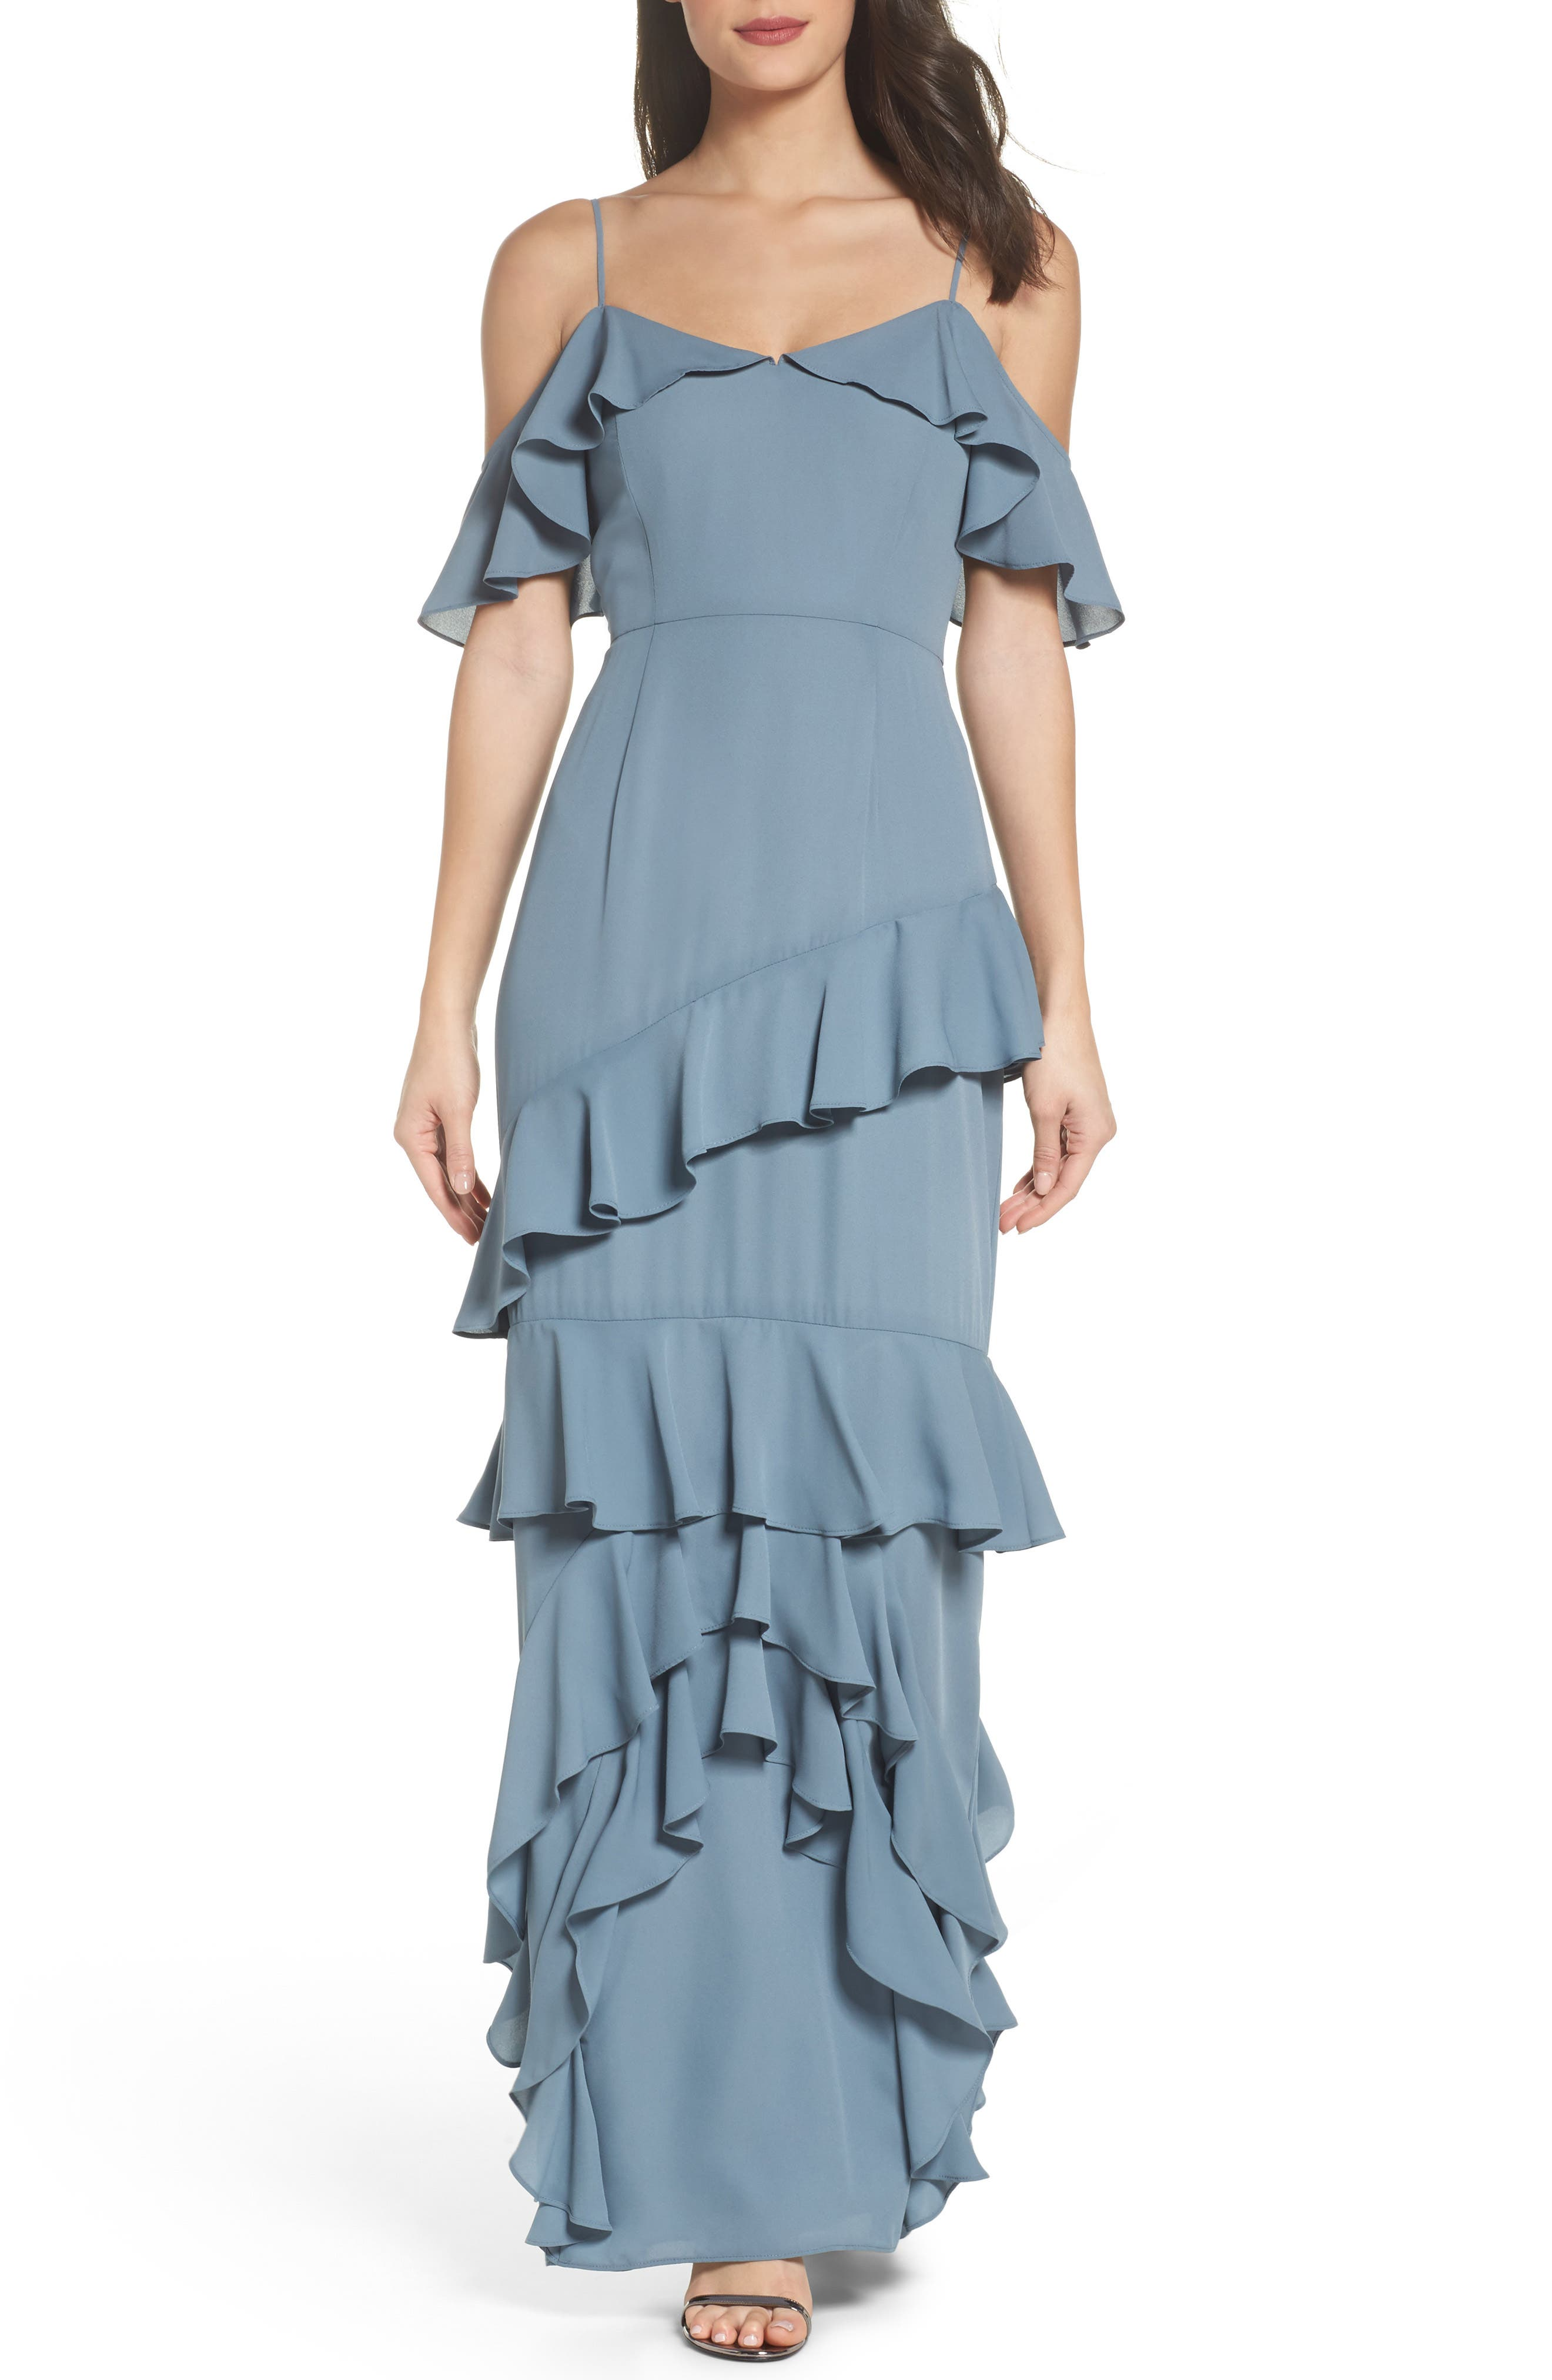 Danielle Off the Shoulder Tiered Crepe Dress,                             Main thumbnail 1, color,                             020